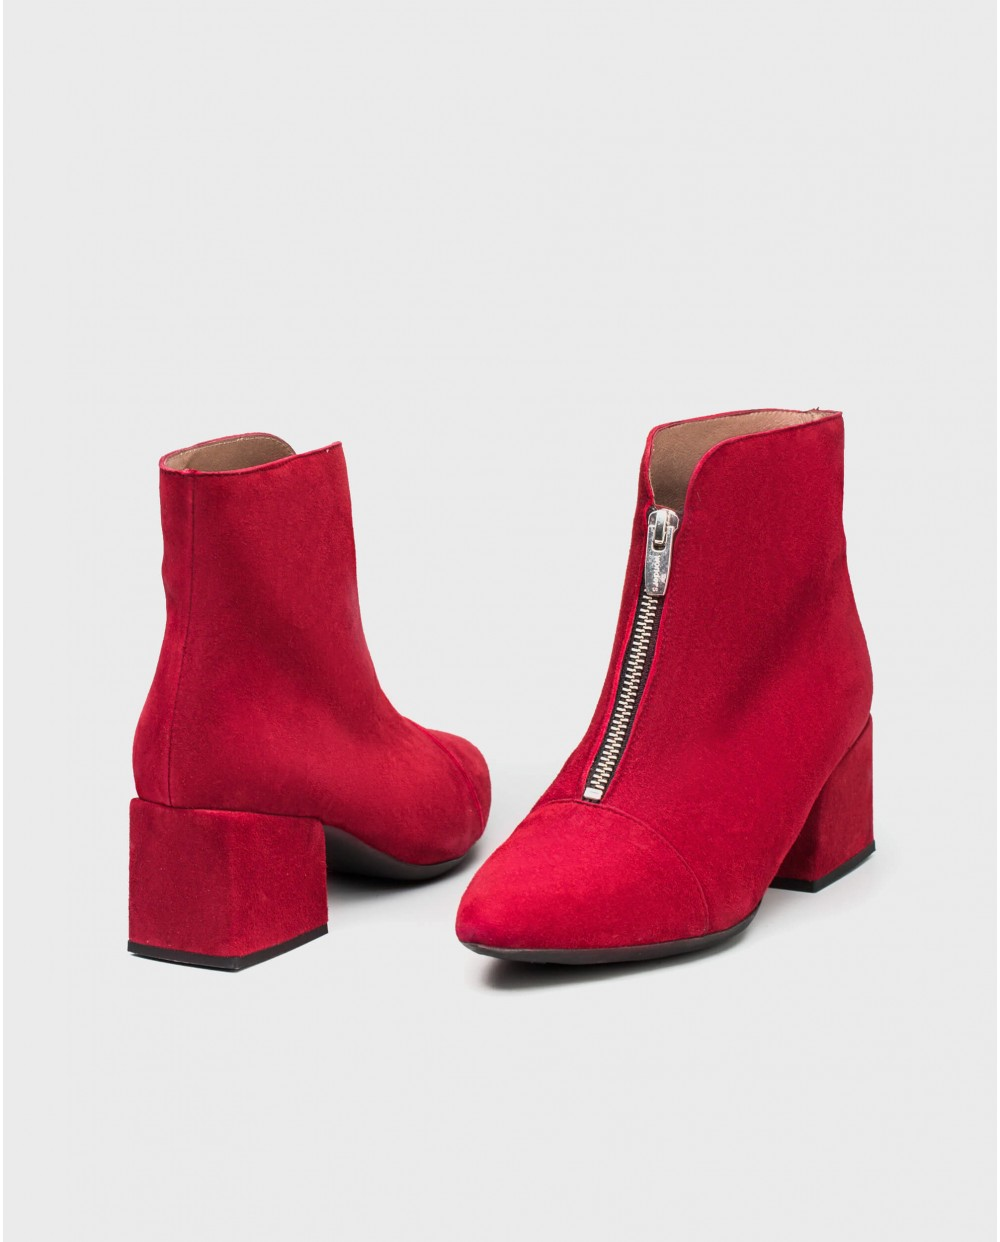 Wonders-Outlet Women-Suede leather ankle boot with front zip design